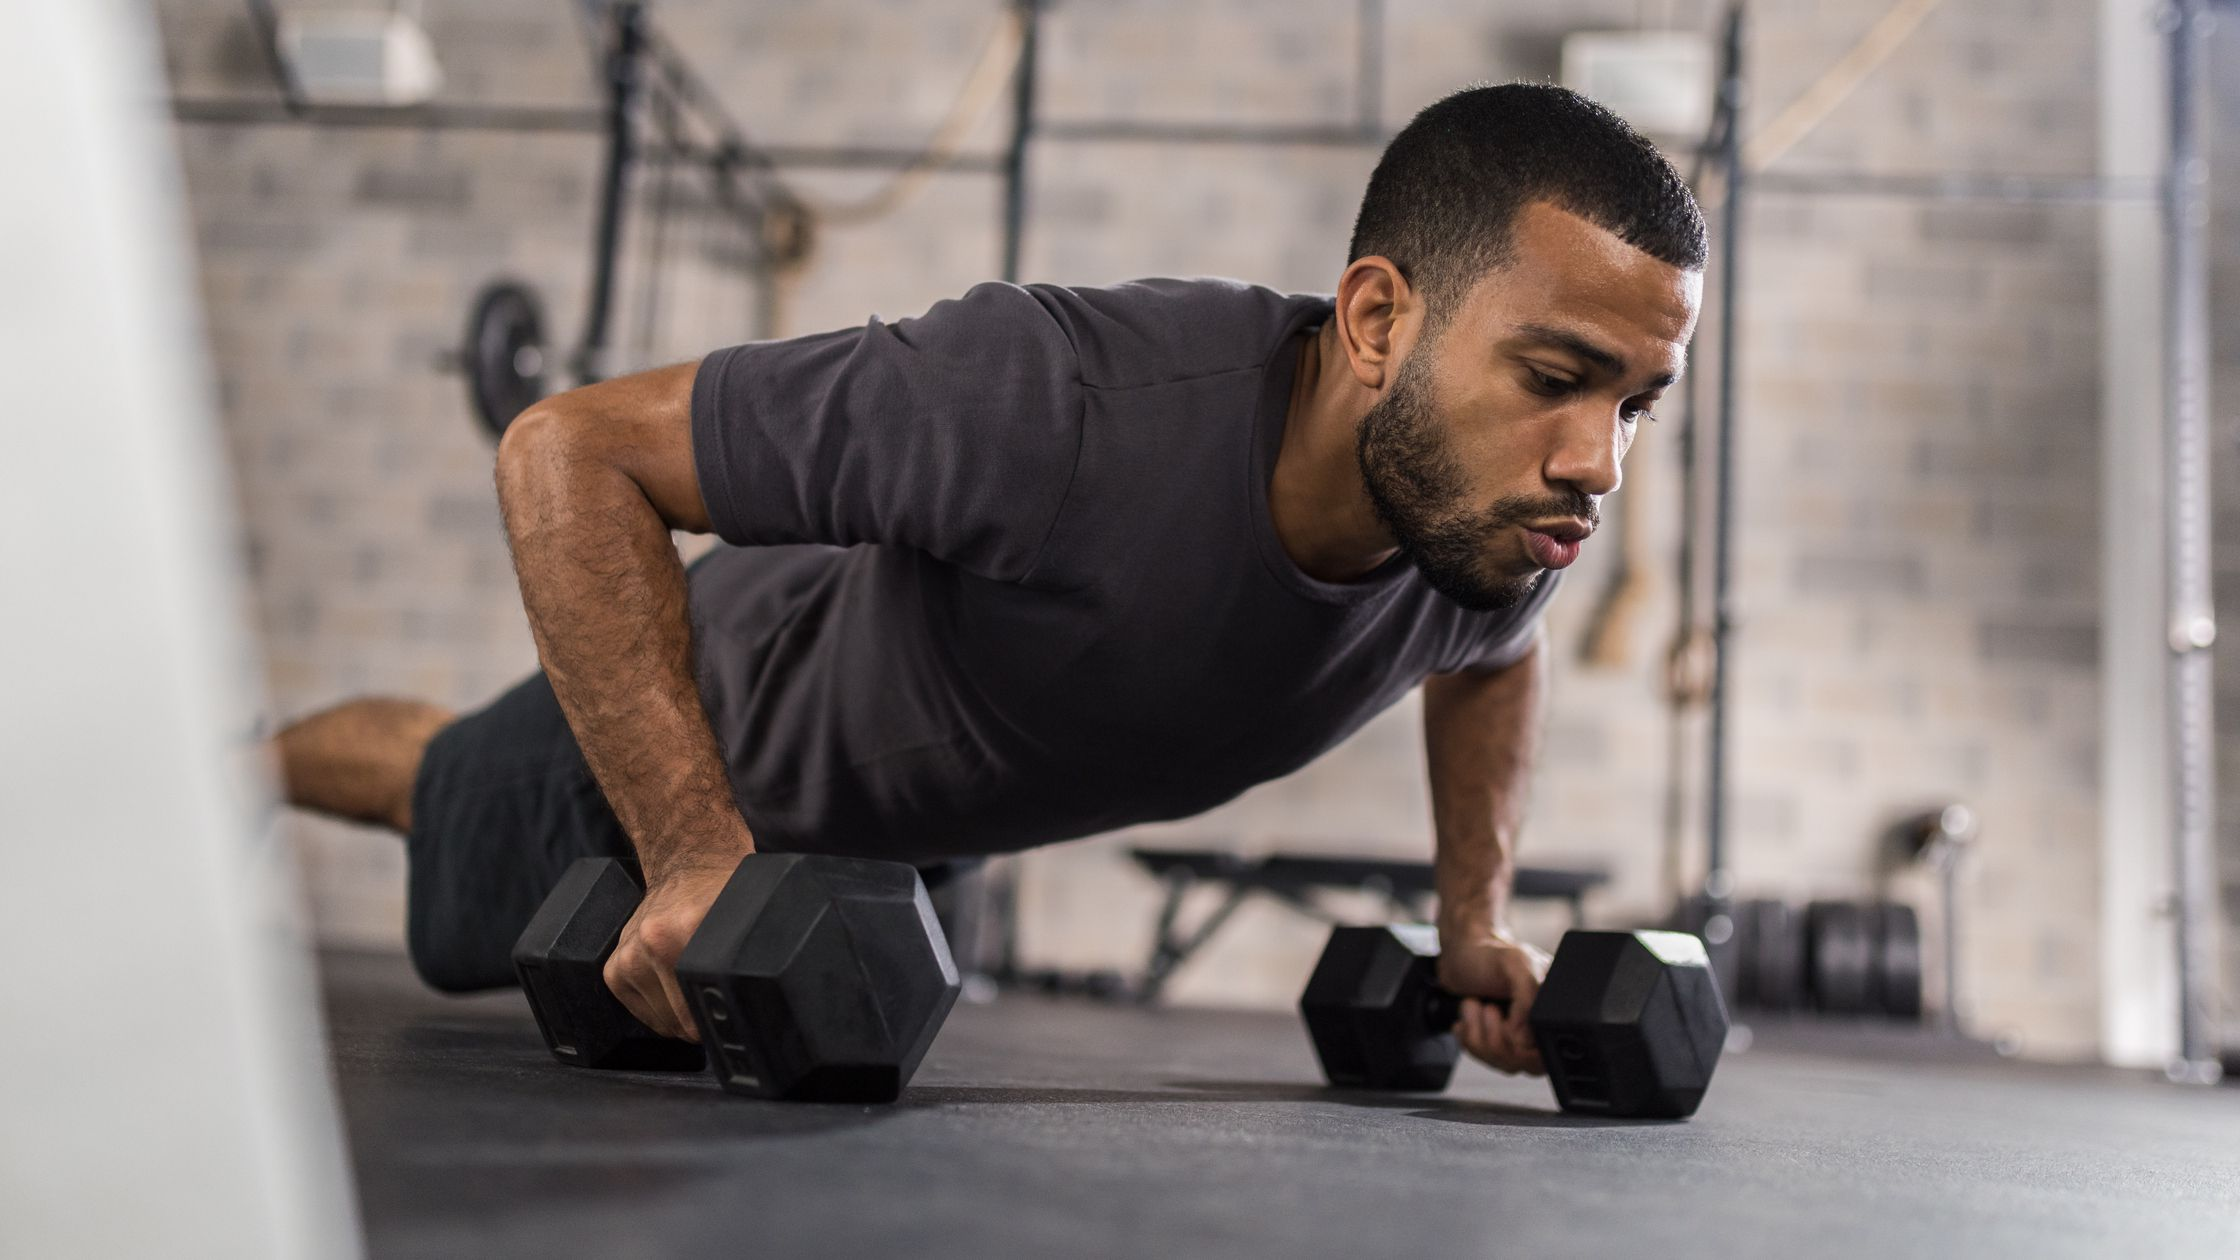 Check Out These Great Strength Training Tips For Beginners